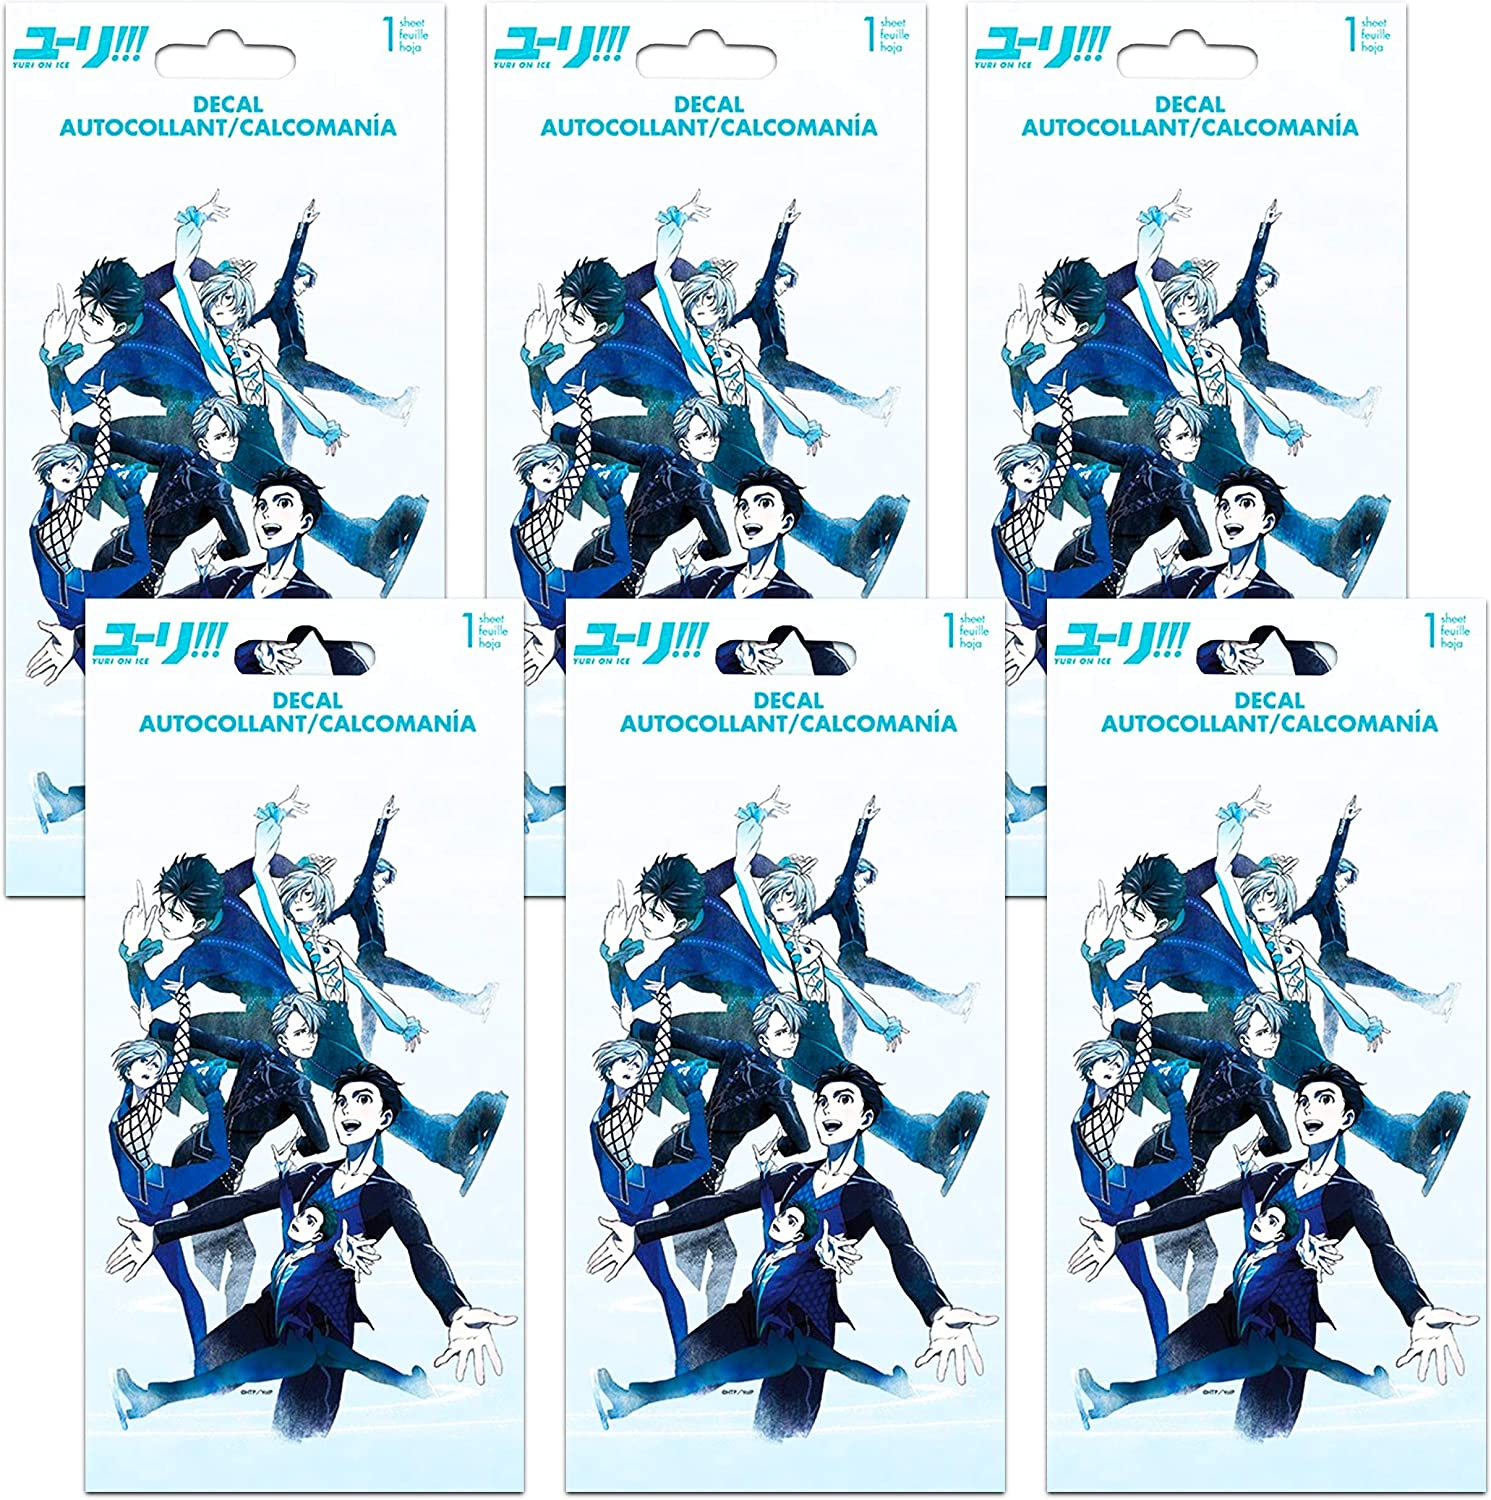 Yuri on Ice Party Supplies Laptop Yuri on Ice Party Favors Decals Bundle Set ~ 6 Large Decal Stickers for Car Walls